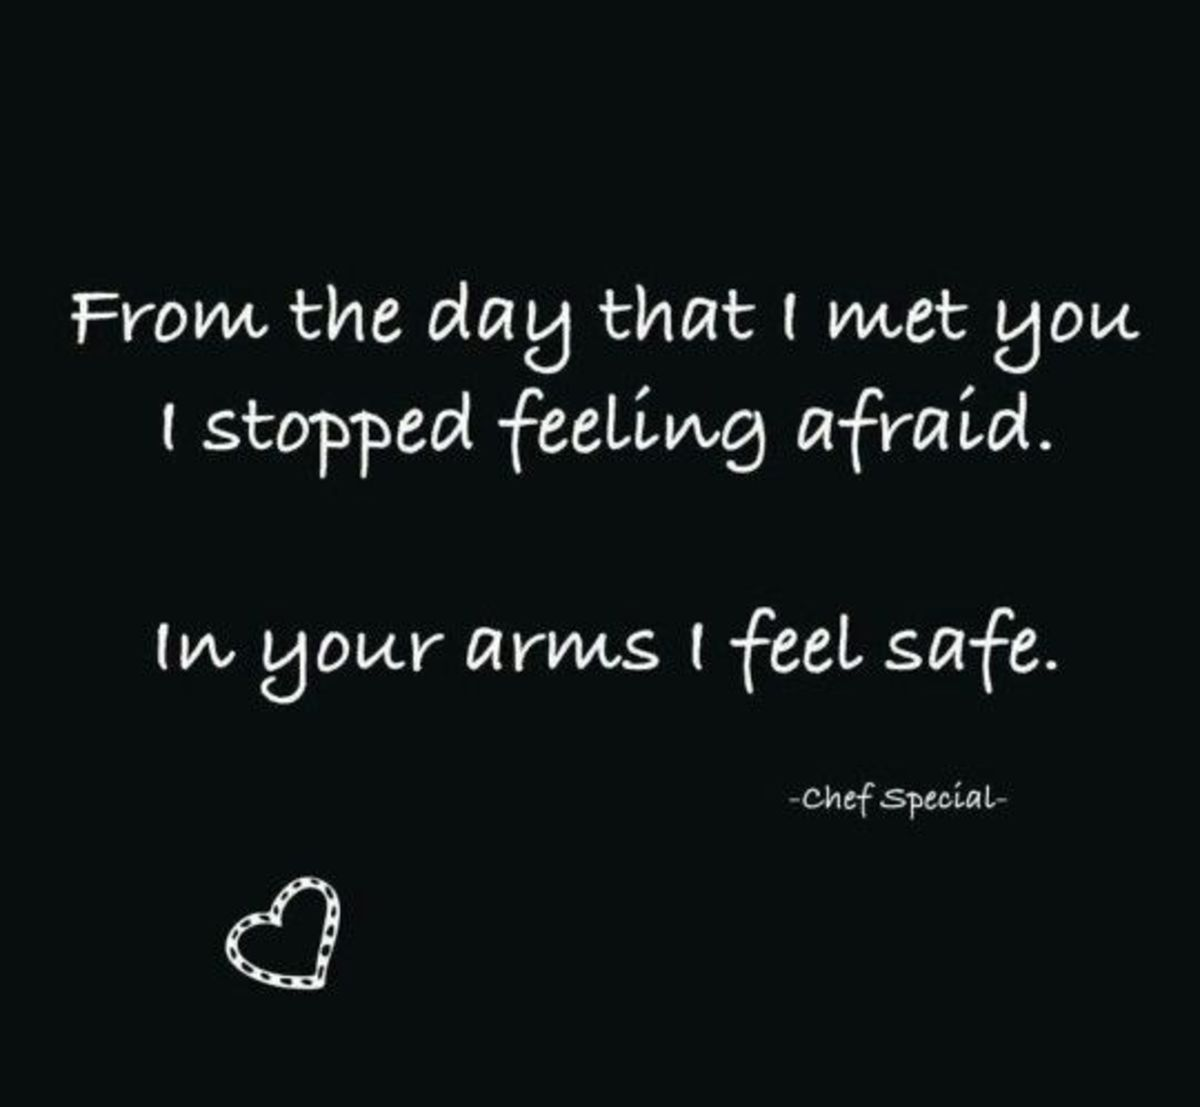 poem-safe-in-your-arms